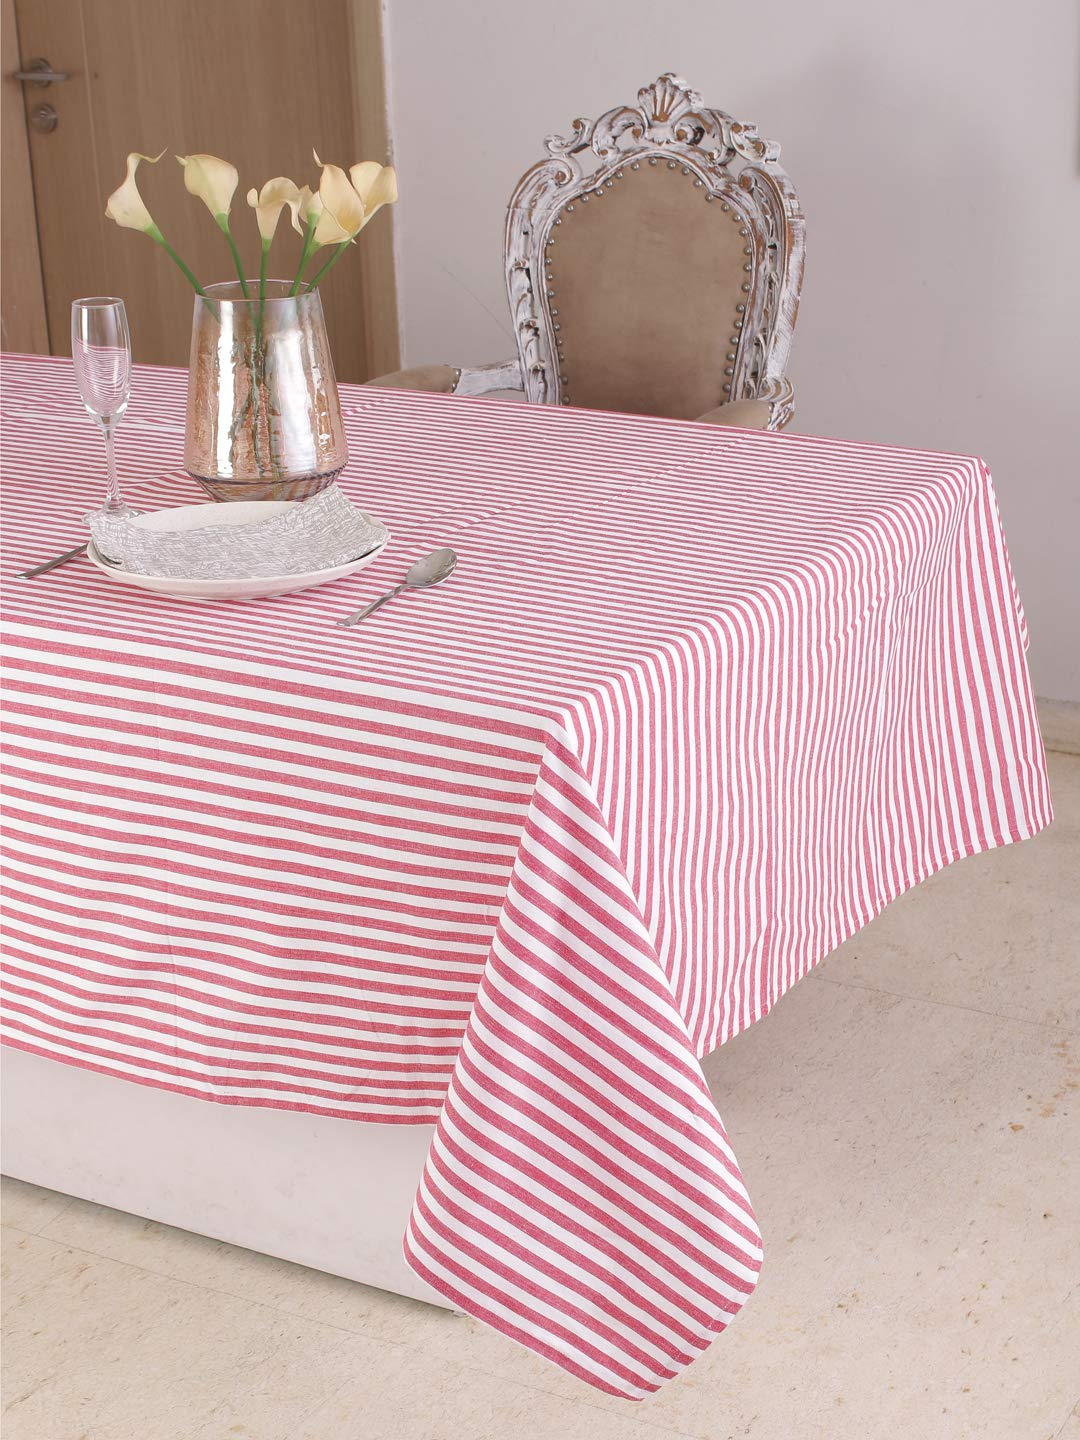 Cotton Square Table Cloth (52 x 52 Inches), Red & White Stripe - Perfect For Spring, Summer, Holidays - Christmas And For Everyday Use